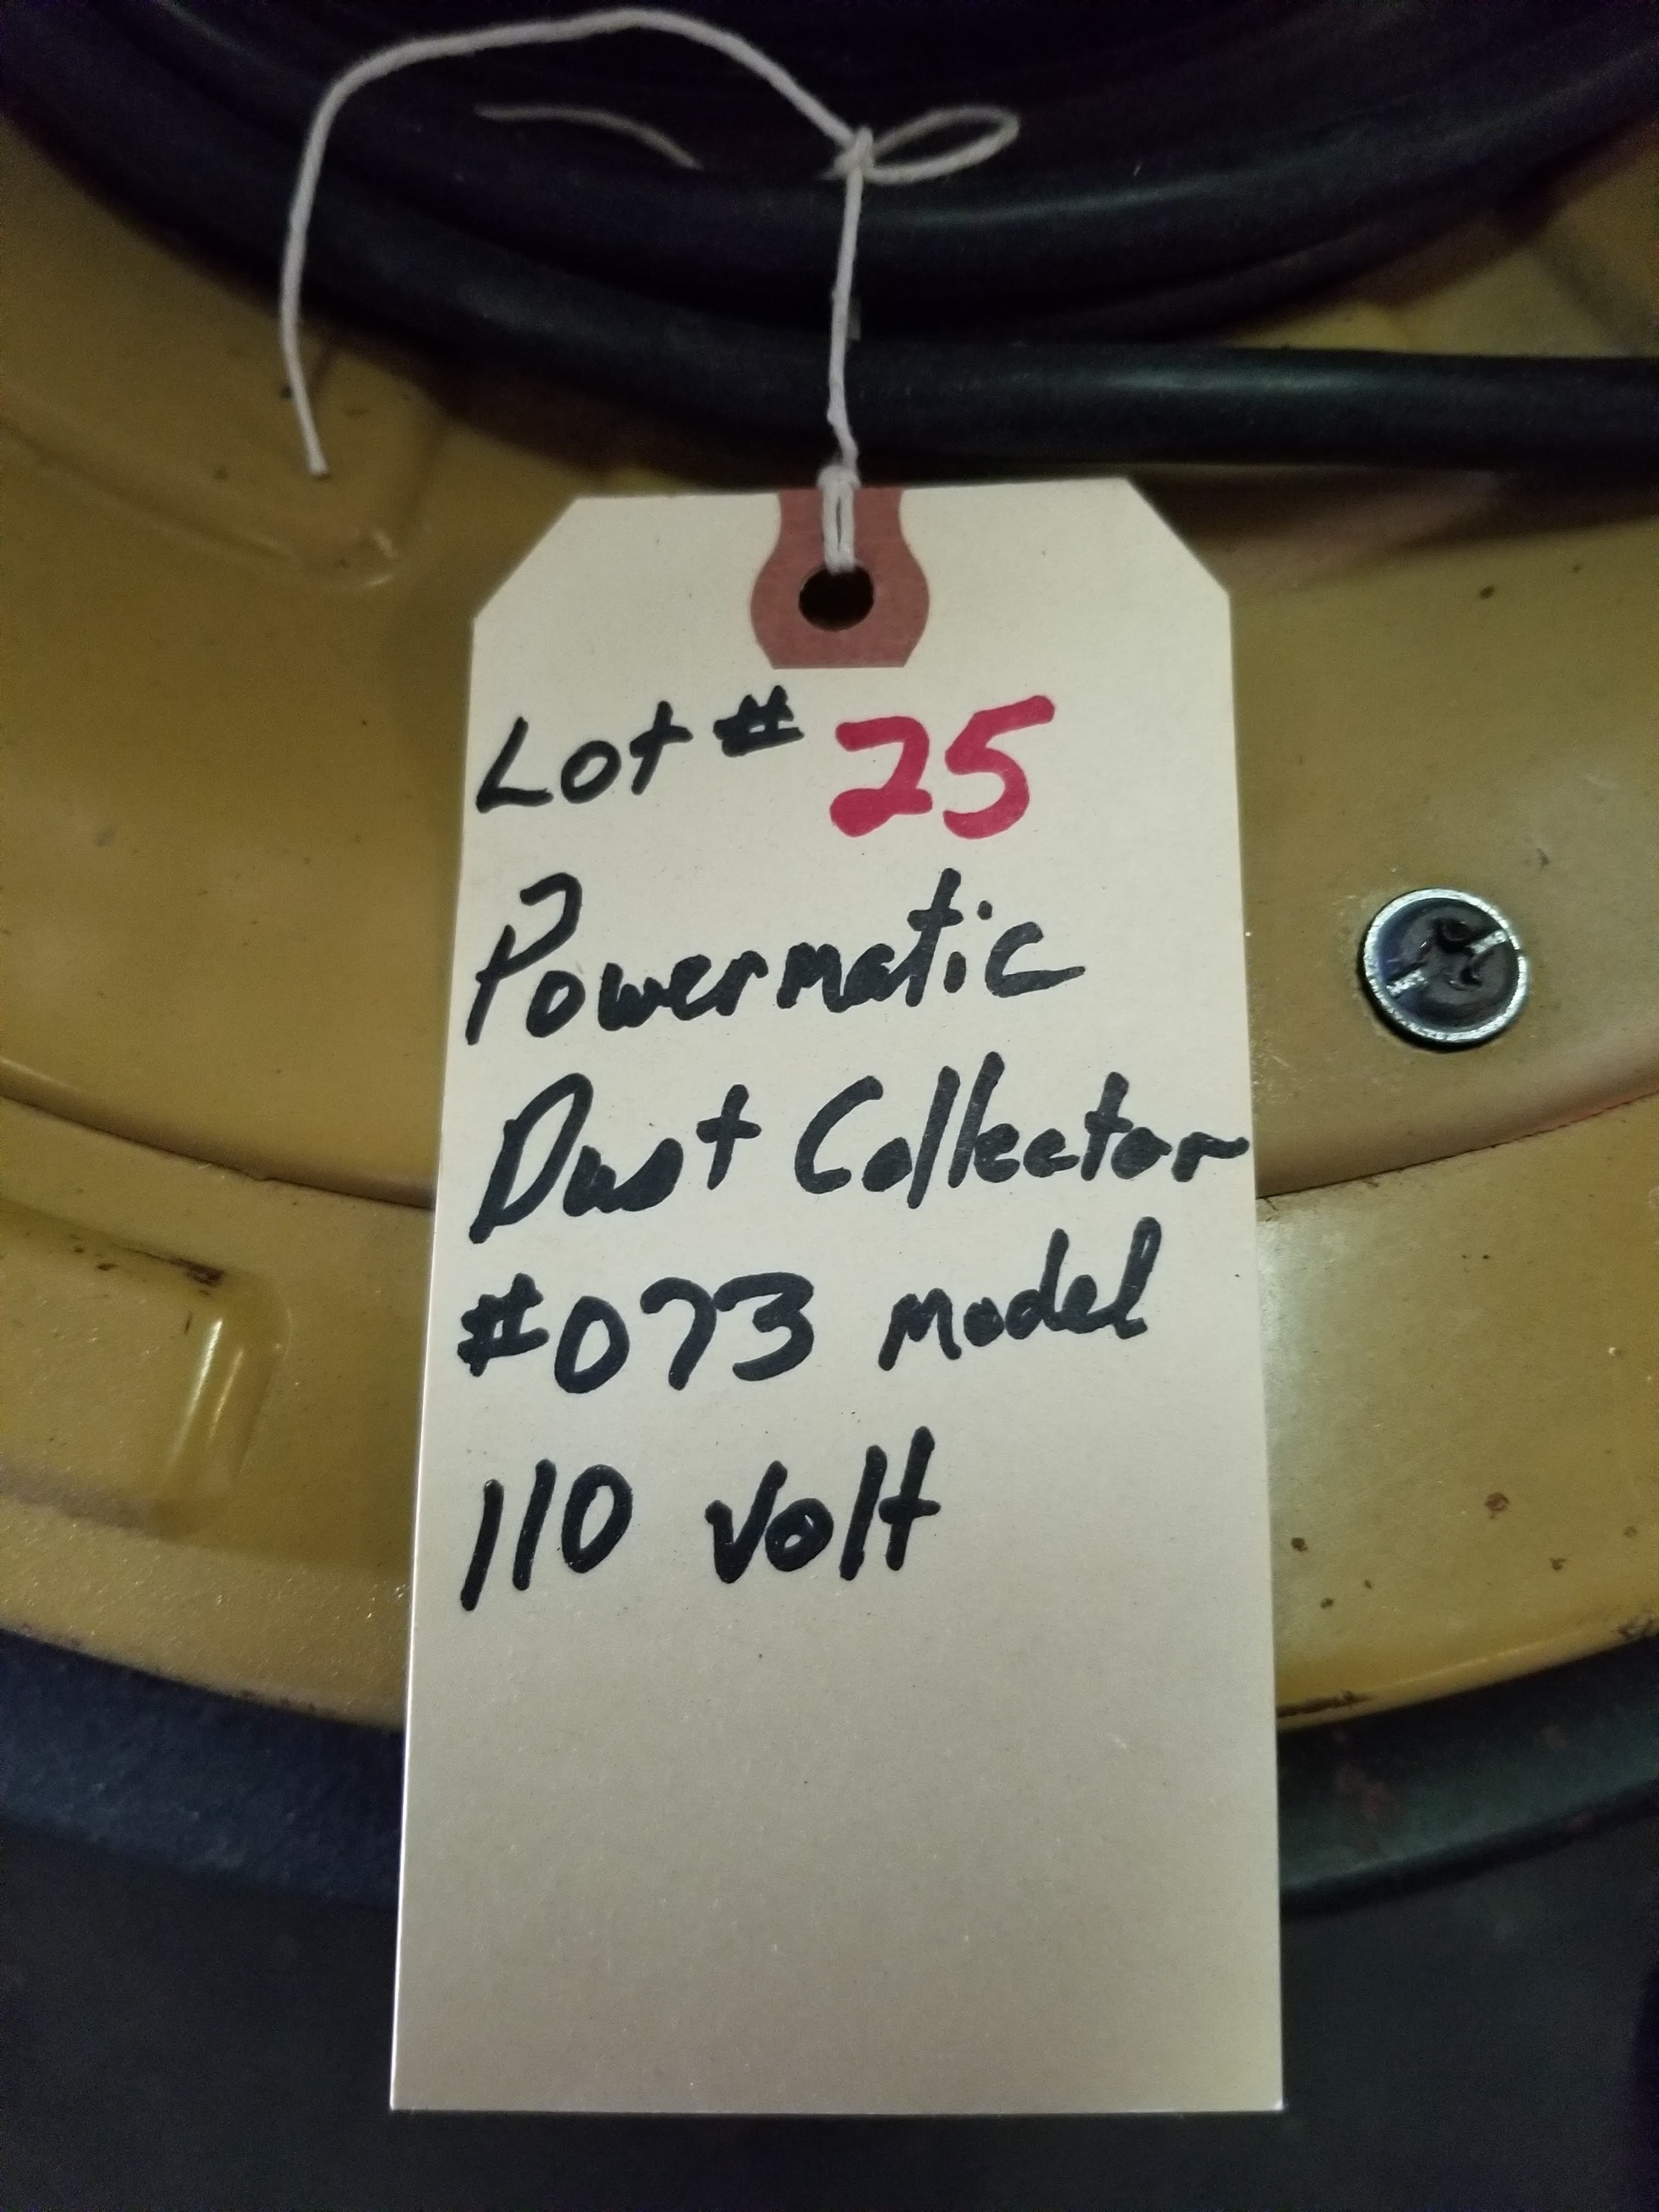 Powermatic Dust Collector Model # 073, 1.5 hp 110V, Top & Bottom Bag, (2) 4-Dust Chutes, Casters. - Image 5 of 5